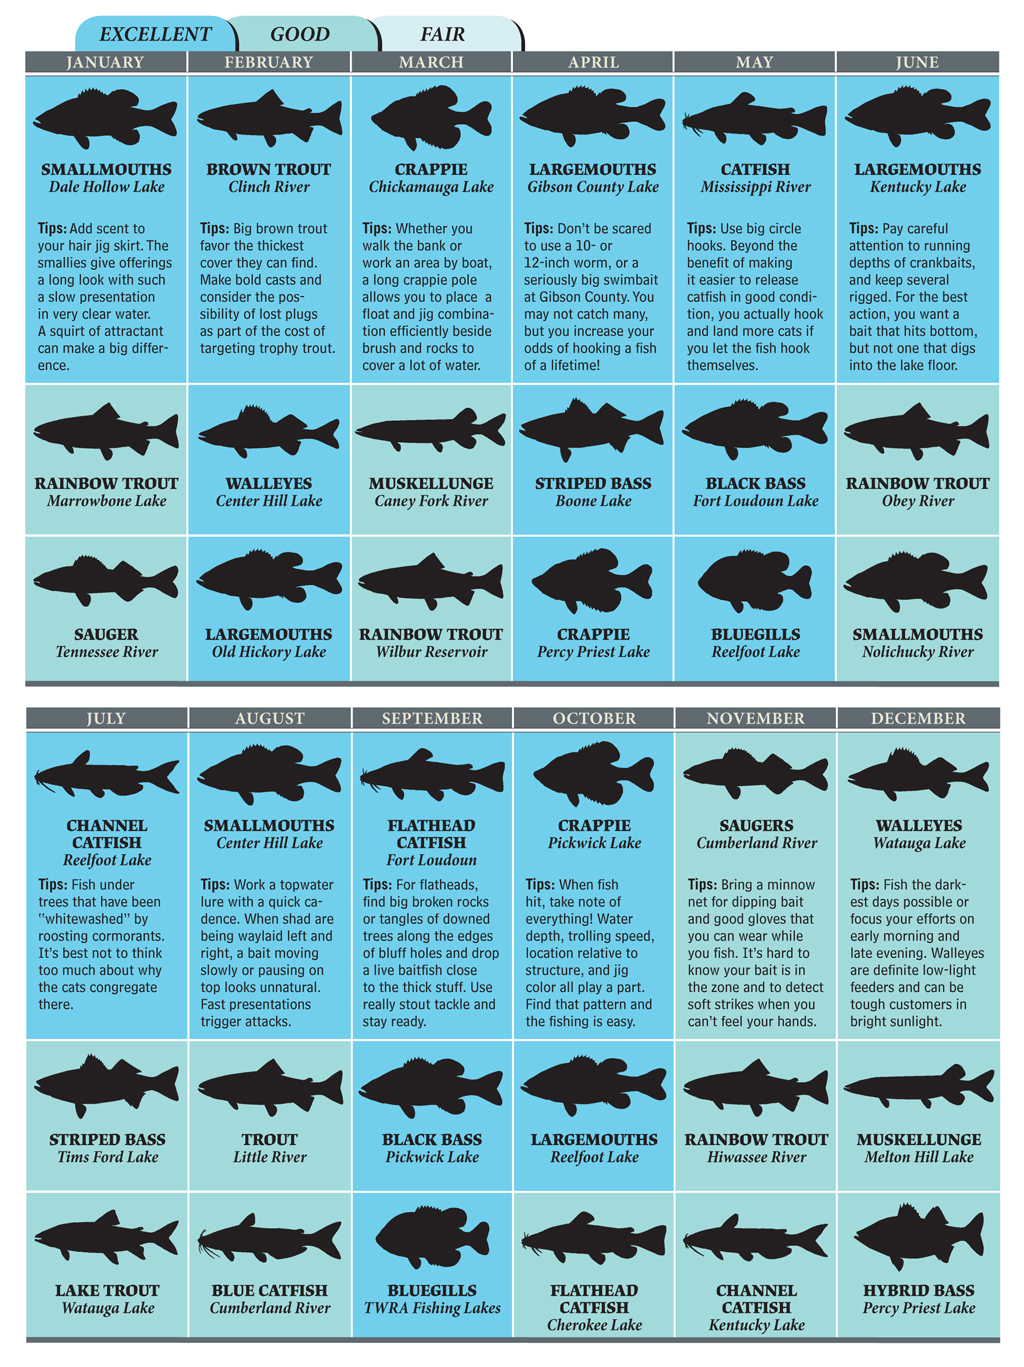 We've picked three of the best bites in Tennessee for every month of the year. Here's a look at our 2012 Tennessee Fishing Calendar.